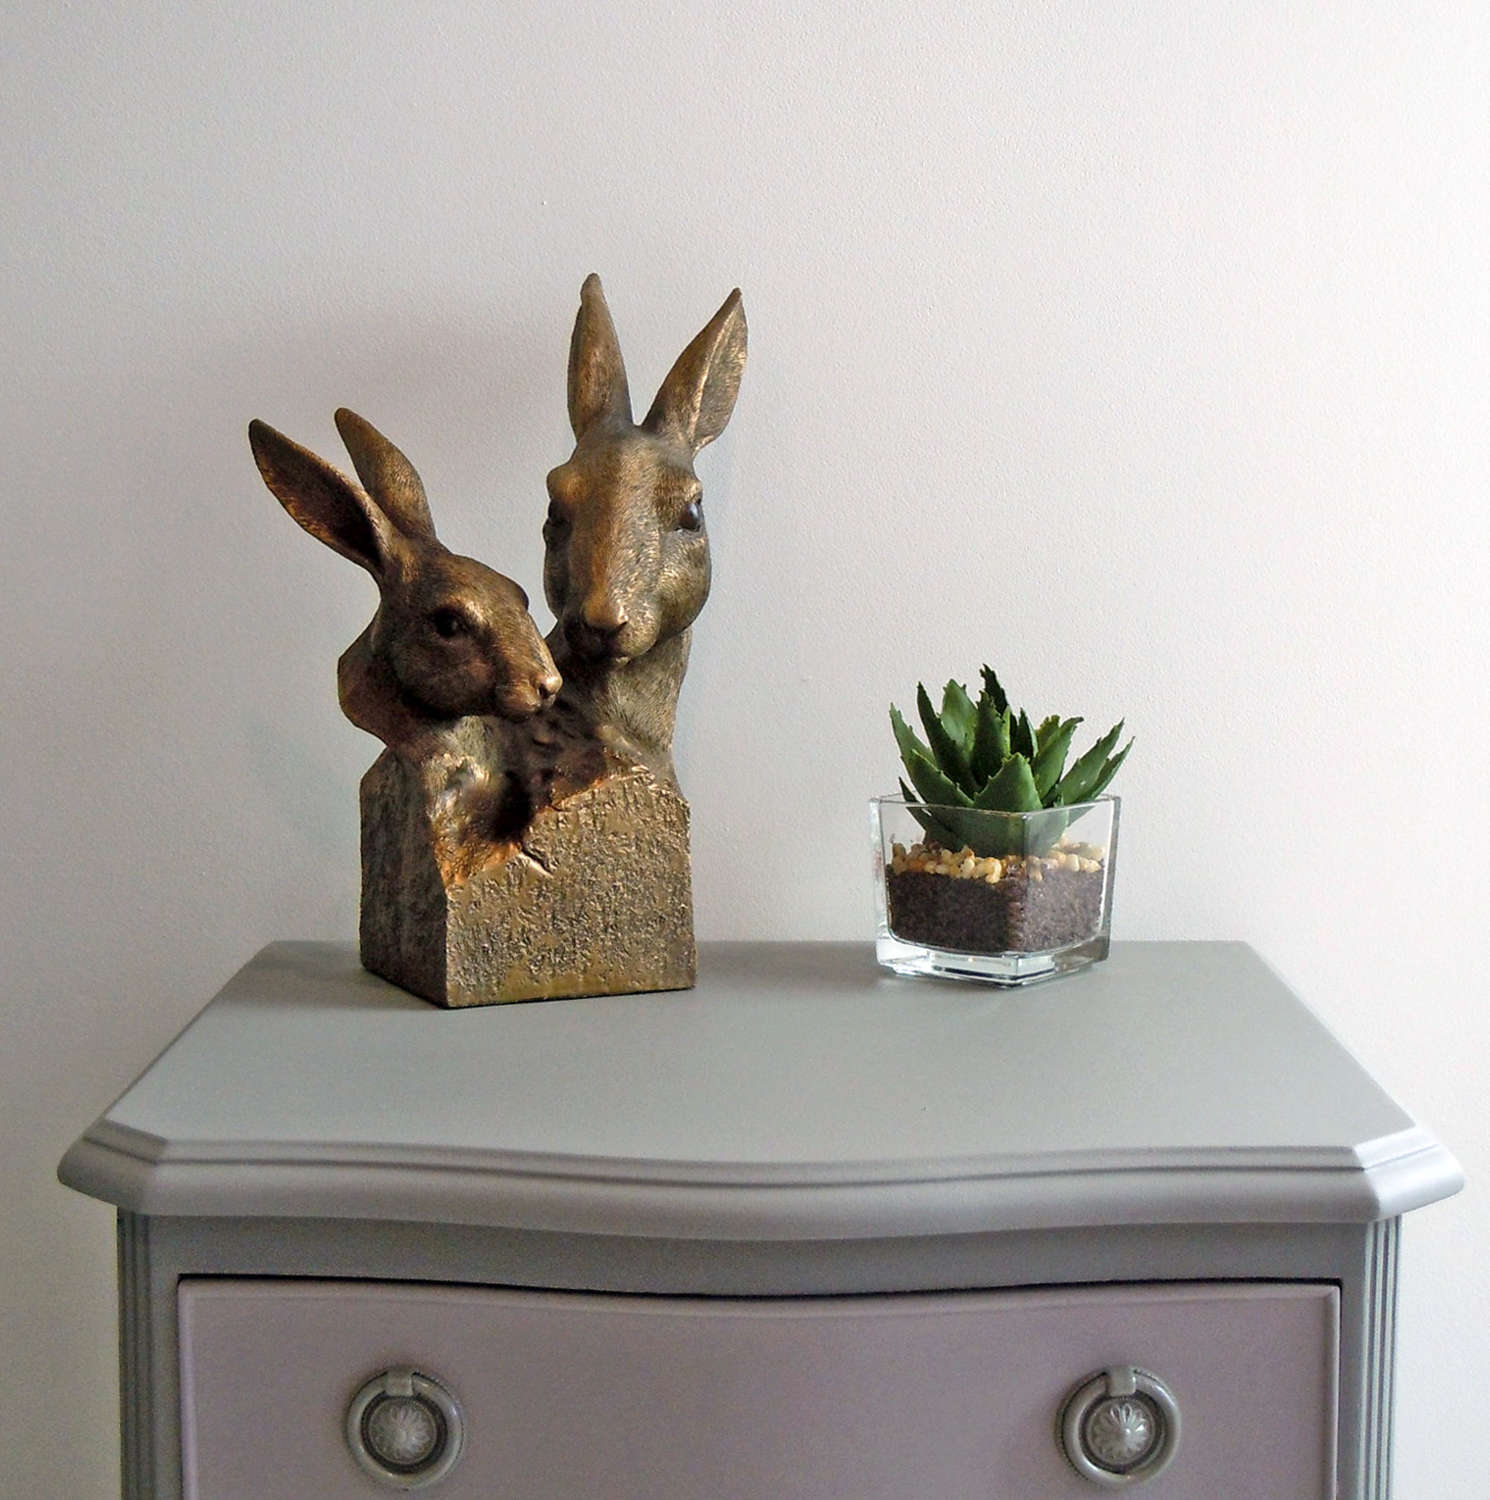 Hare bust sculpture in a bronze effect finish